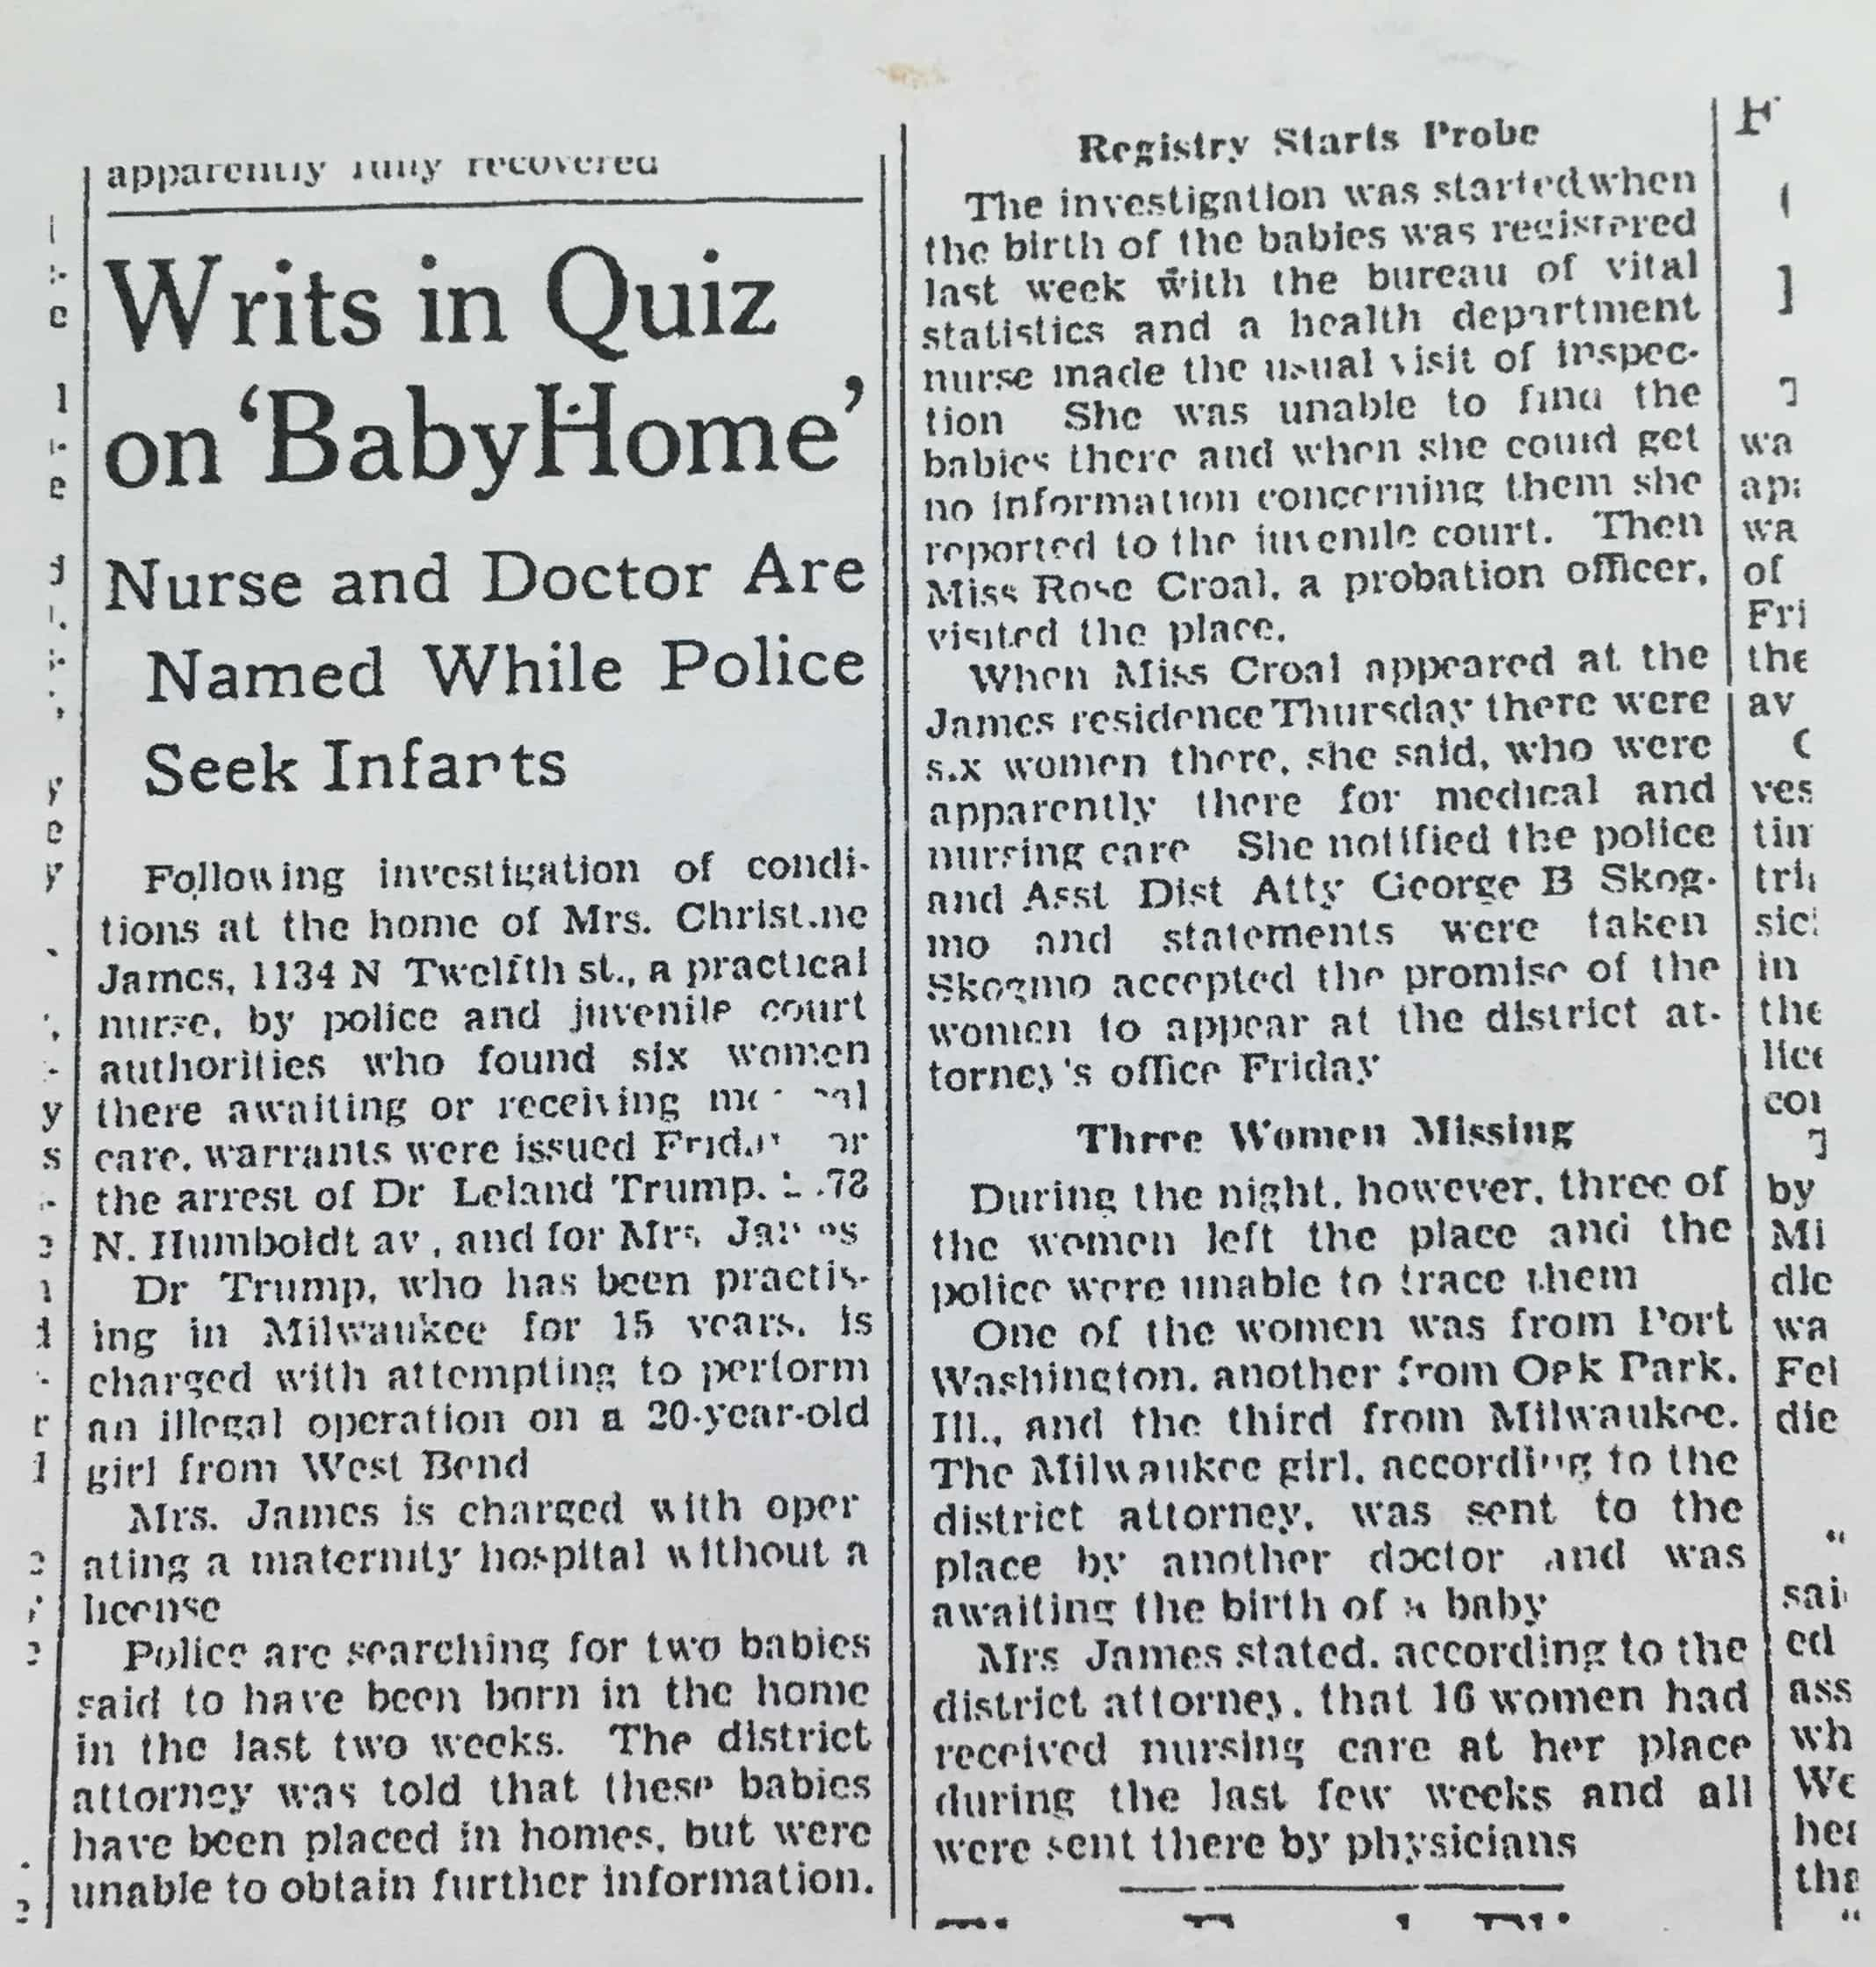 Nurse and Doctor are Named While Police Seek Infants